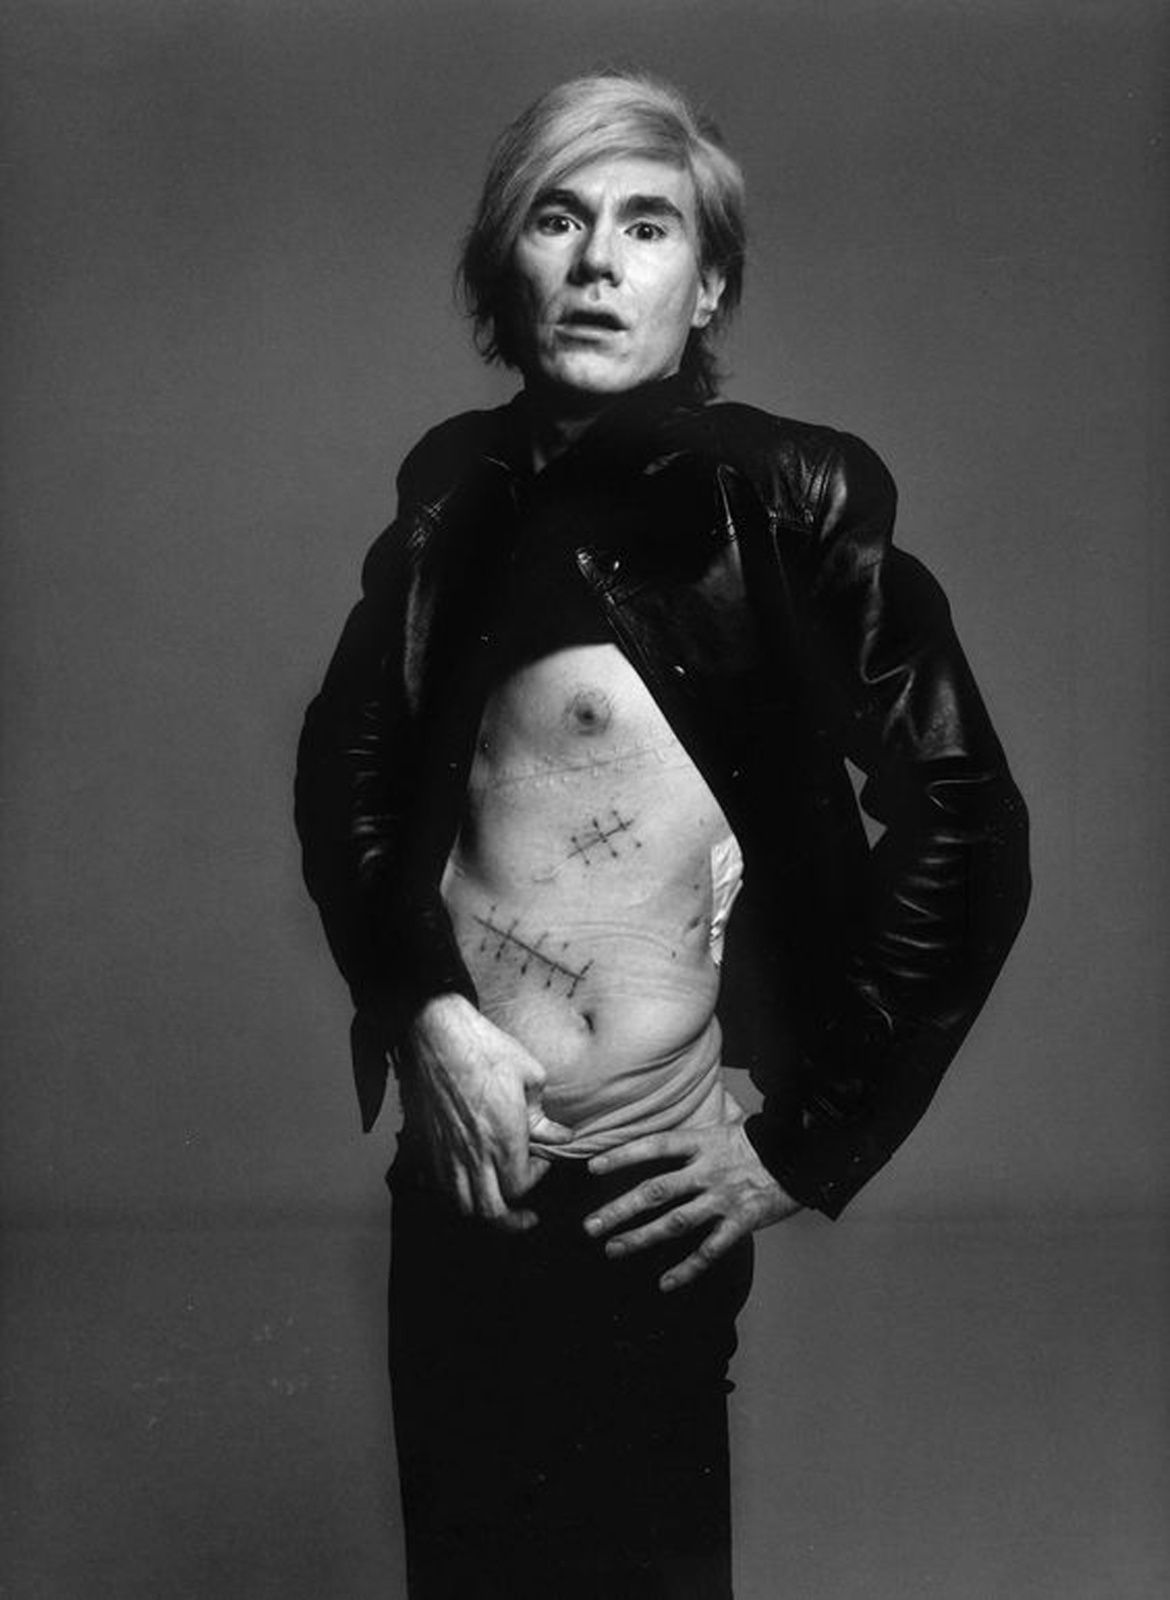 """Andy WARHOL"" de Richard AVEDON - Courtesy Fondation Avedon"